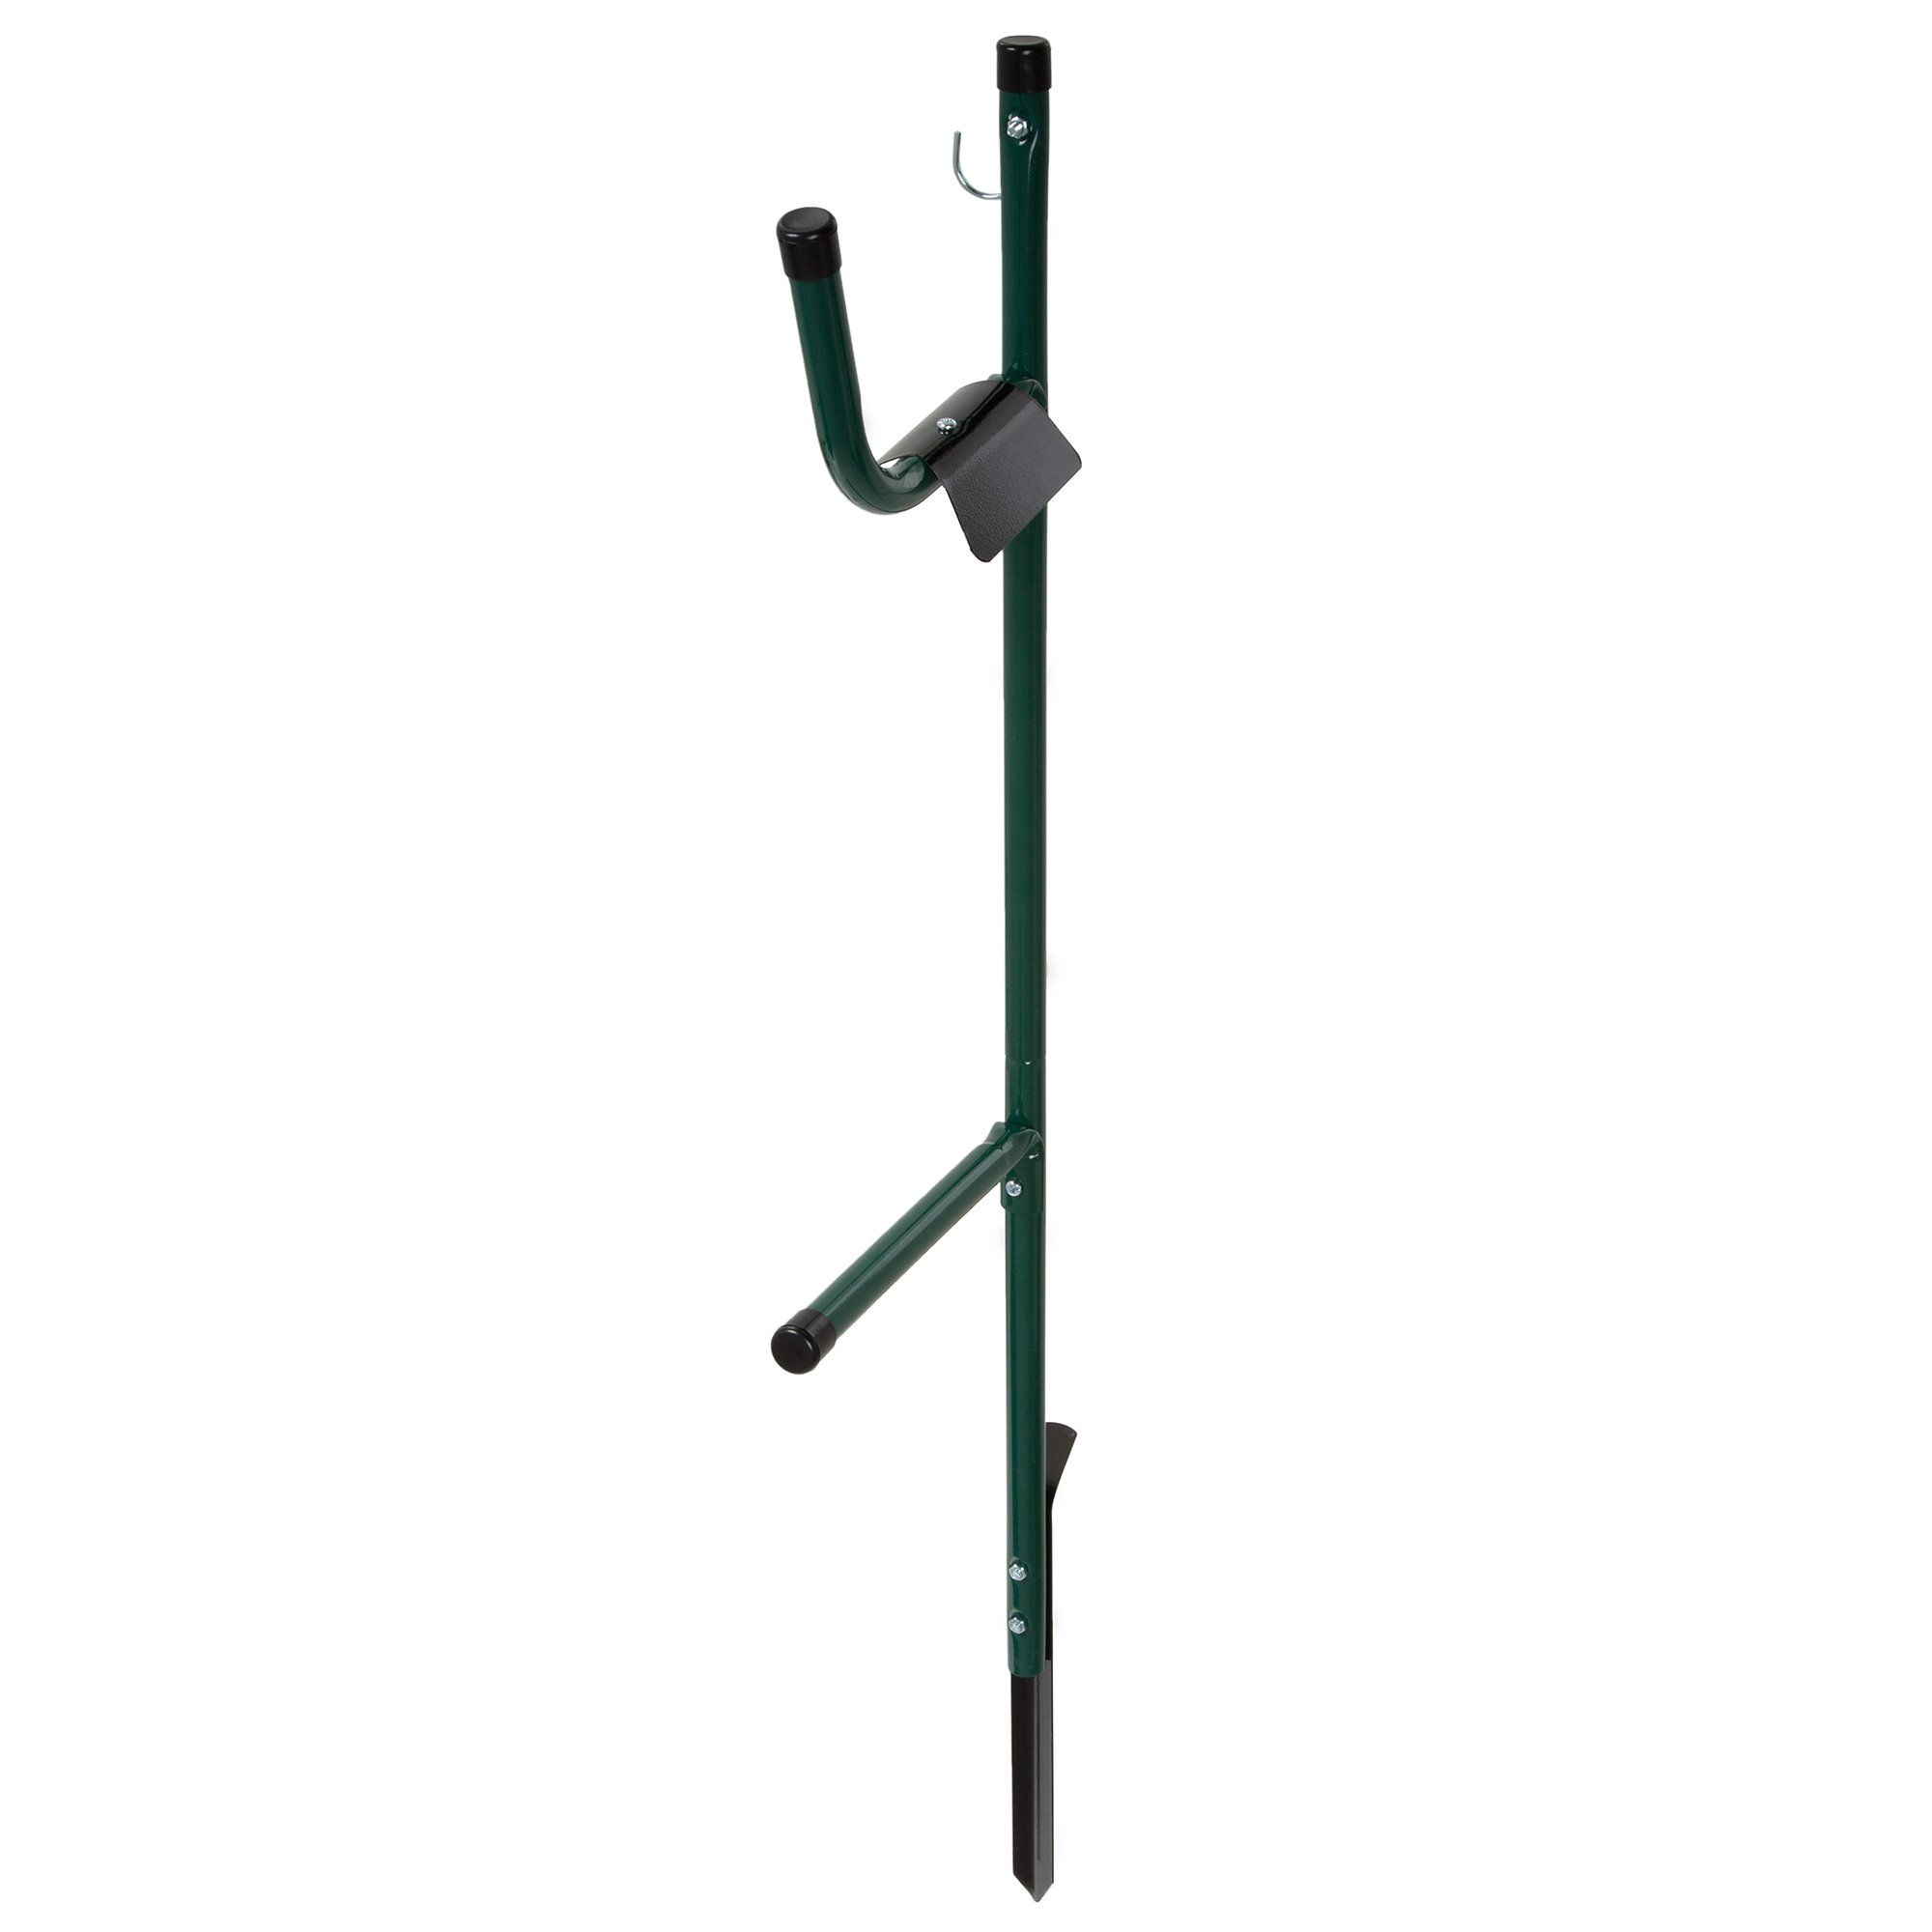 Stalwart Garden Hose Holder Caddy- Easy Install Outdoor Free Standing Metal Rack for Hose Management, Store and Organize Water Hose in Yard